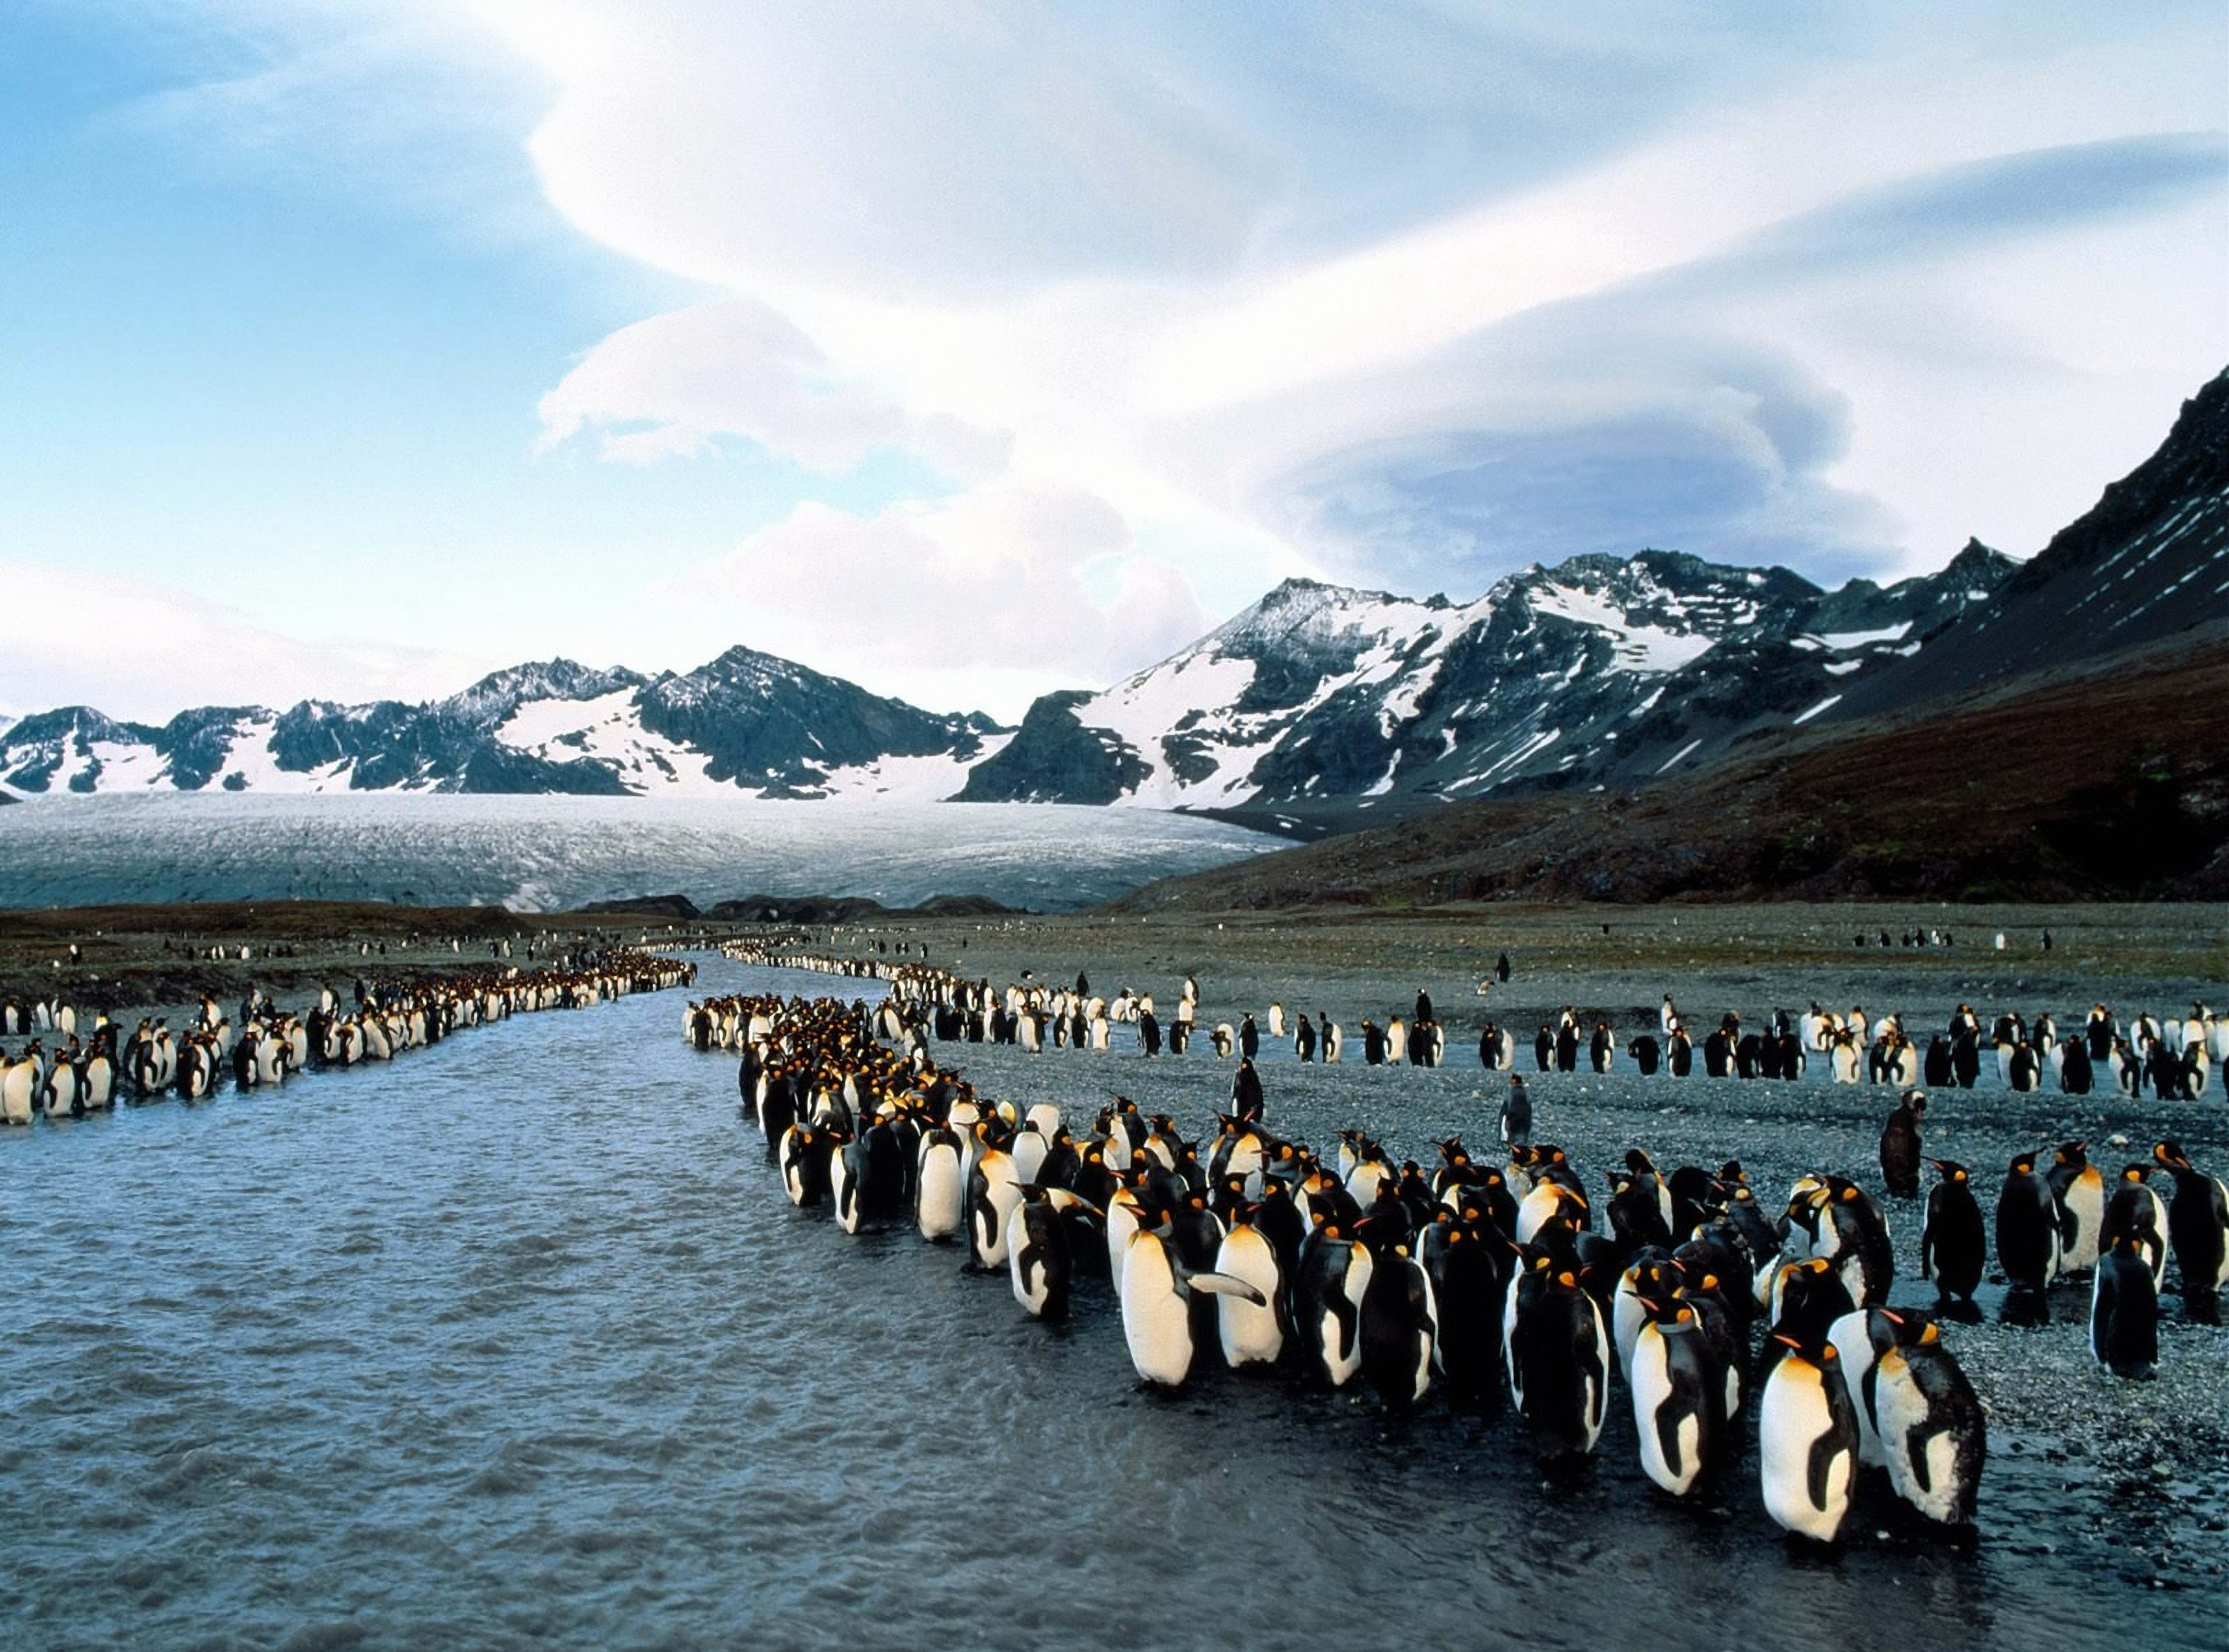 123366 download wallpaper Animals, Pinguins, Mountains, Flock, North, Colony screensavers and pictures for free